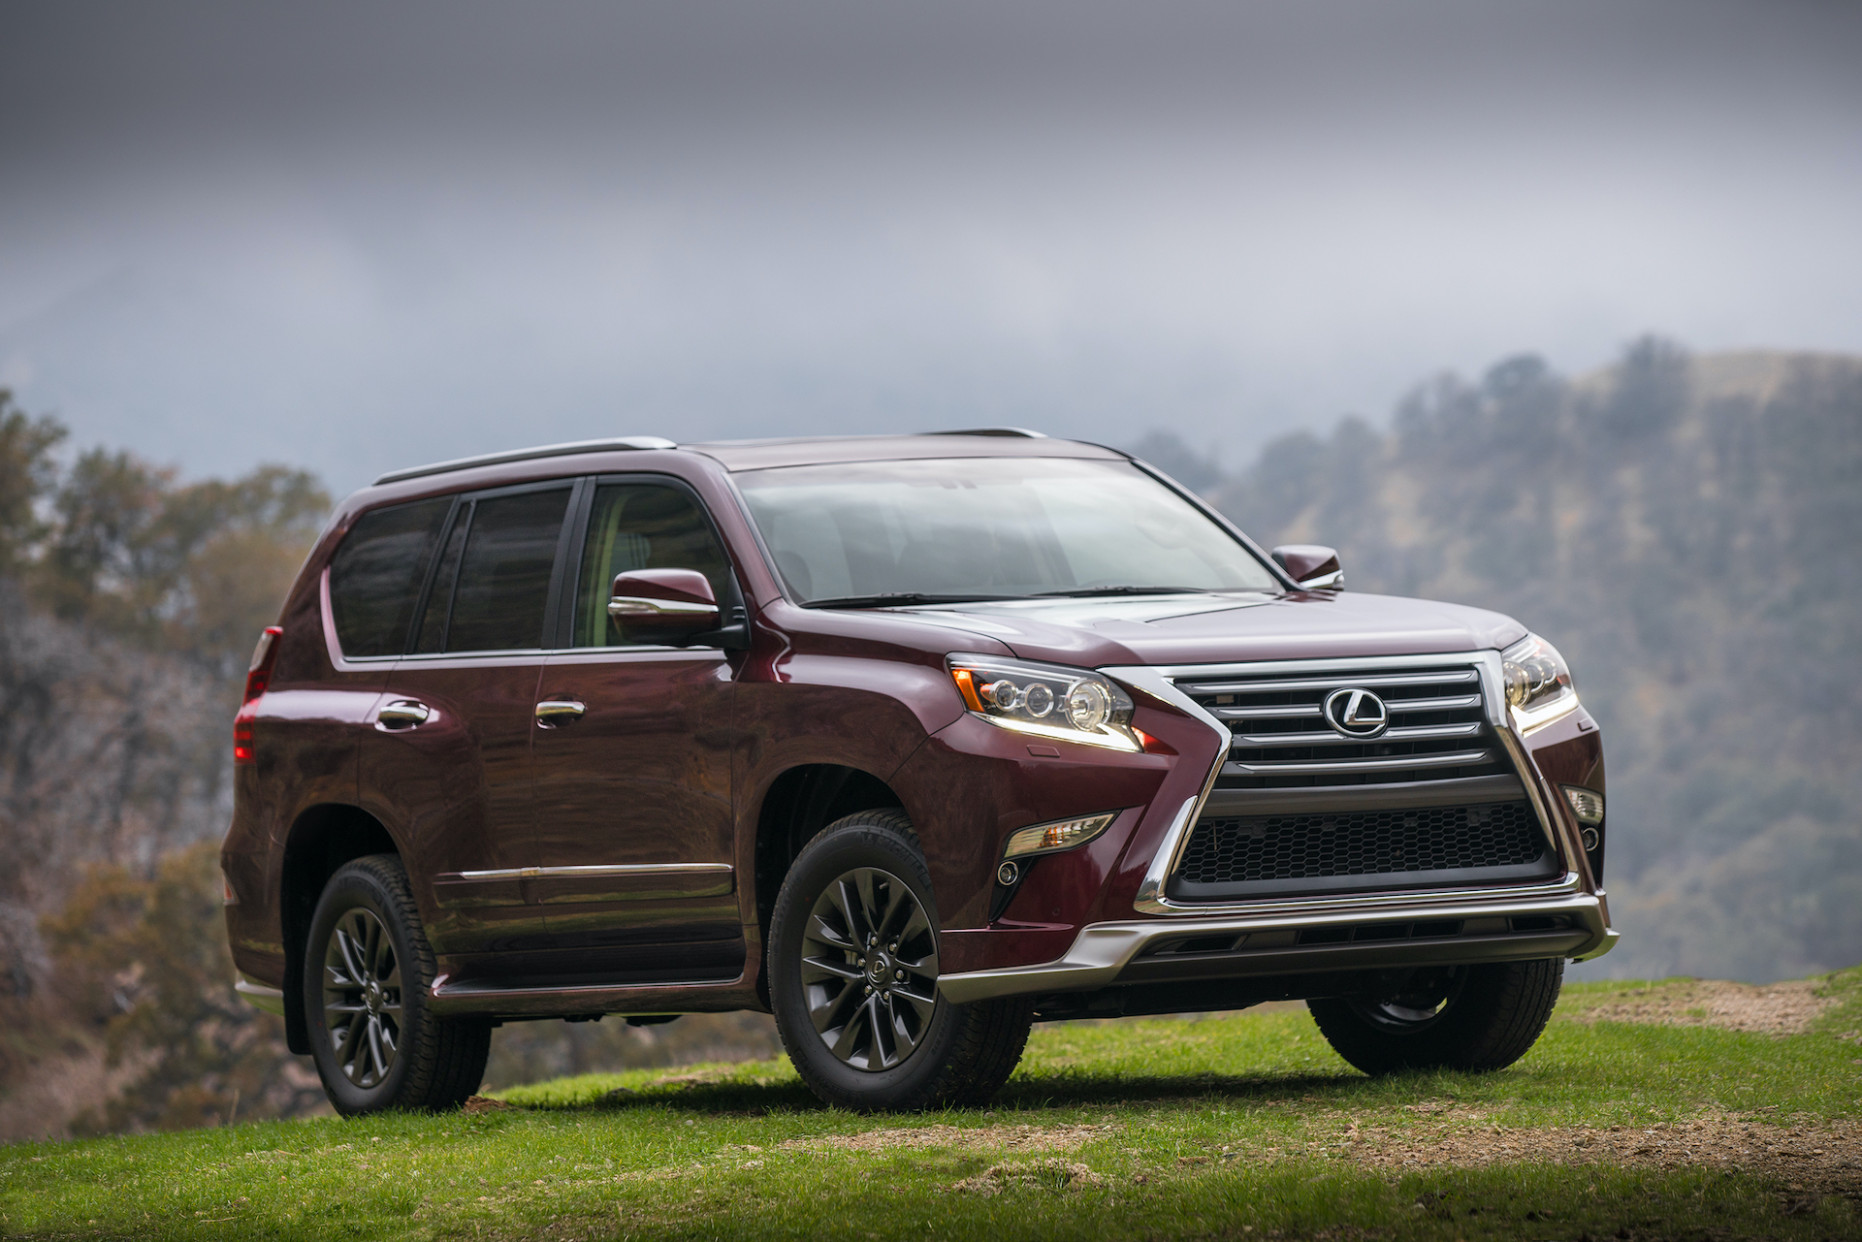 5 Lexus GX Review, Ratings, Specs, Prices, and Photos - The Car ...